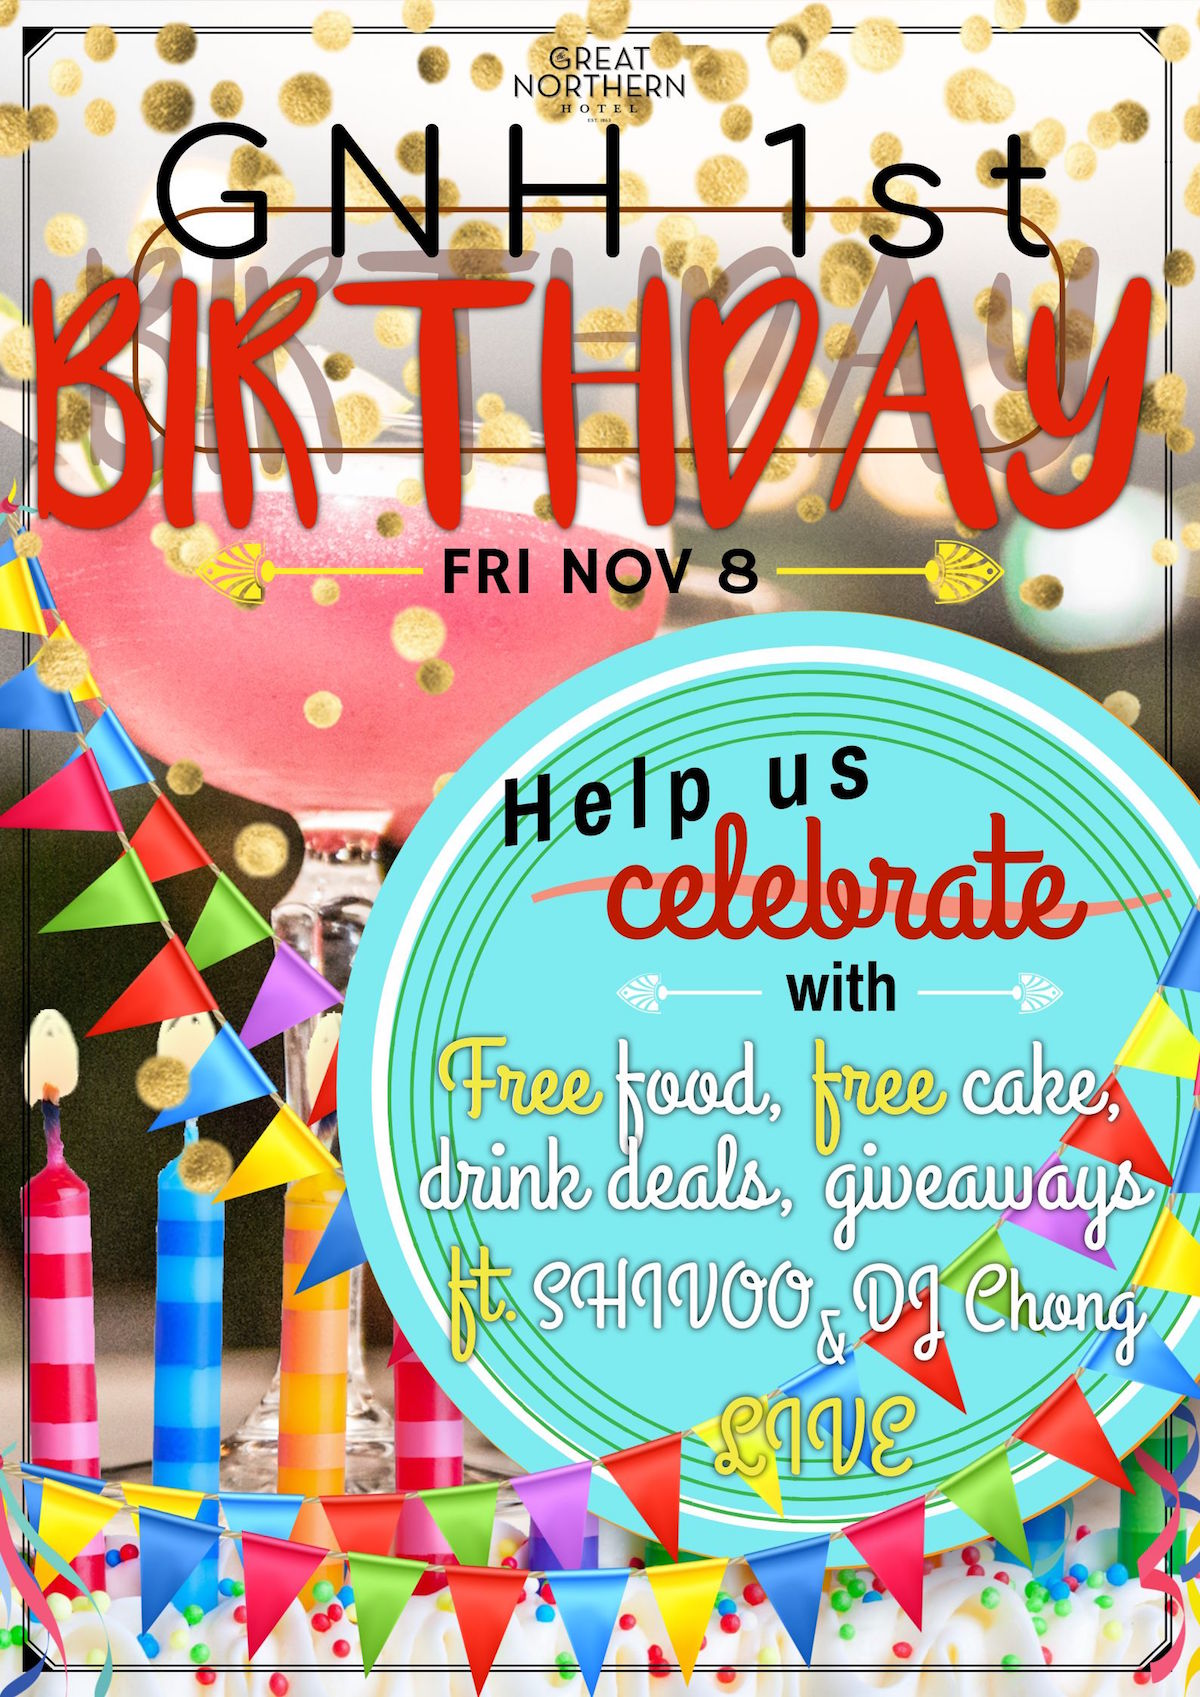 GNH 1st Birthday Party! Featuring Shivoo & DJ Chong